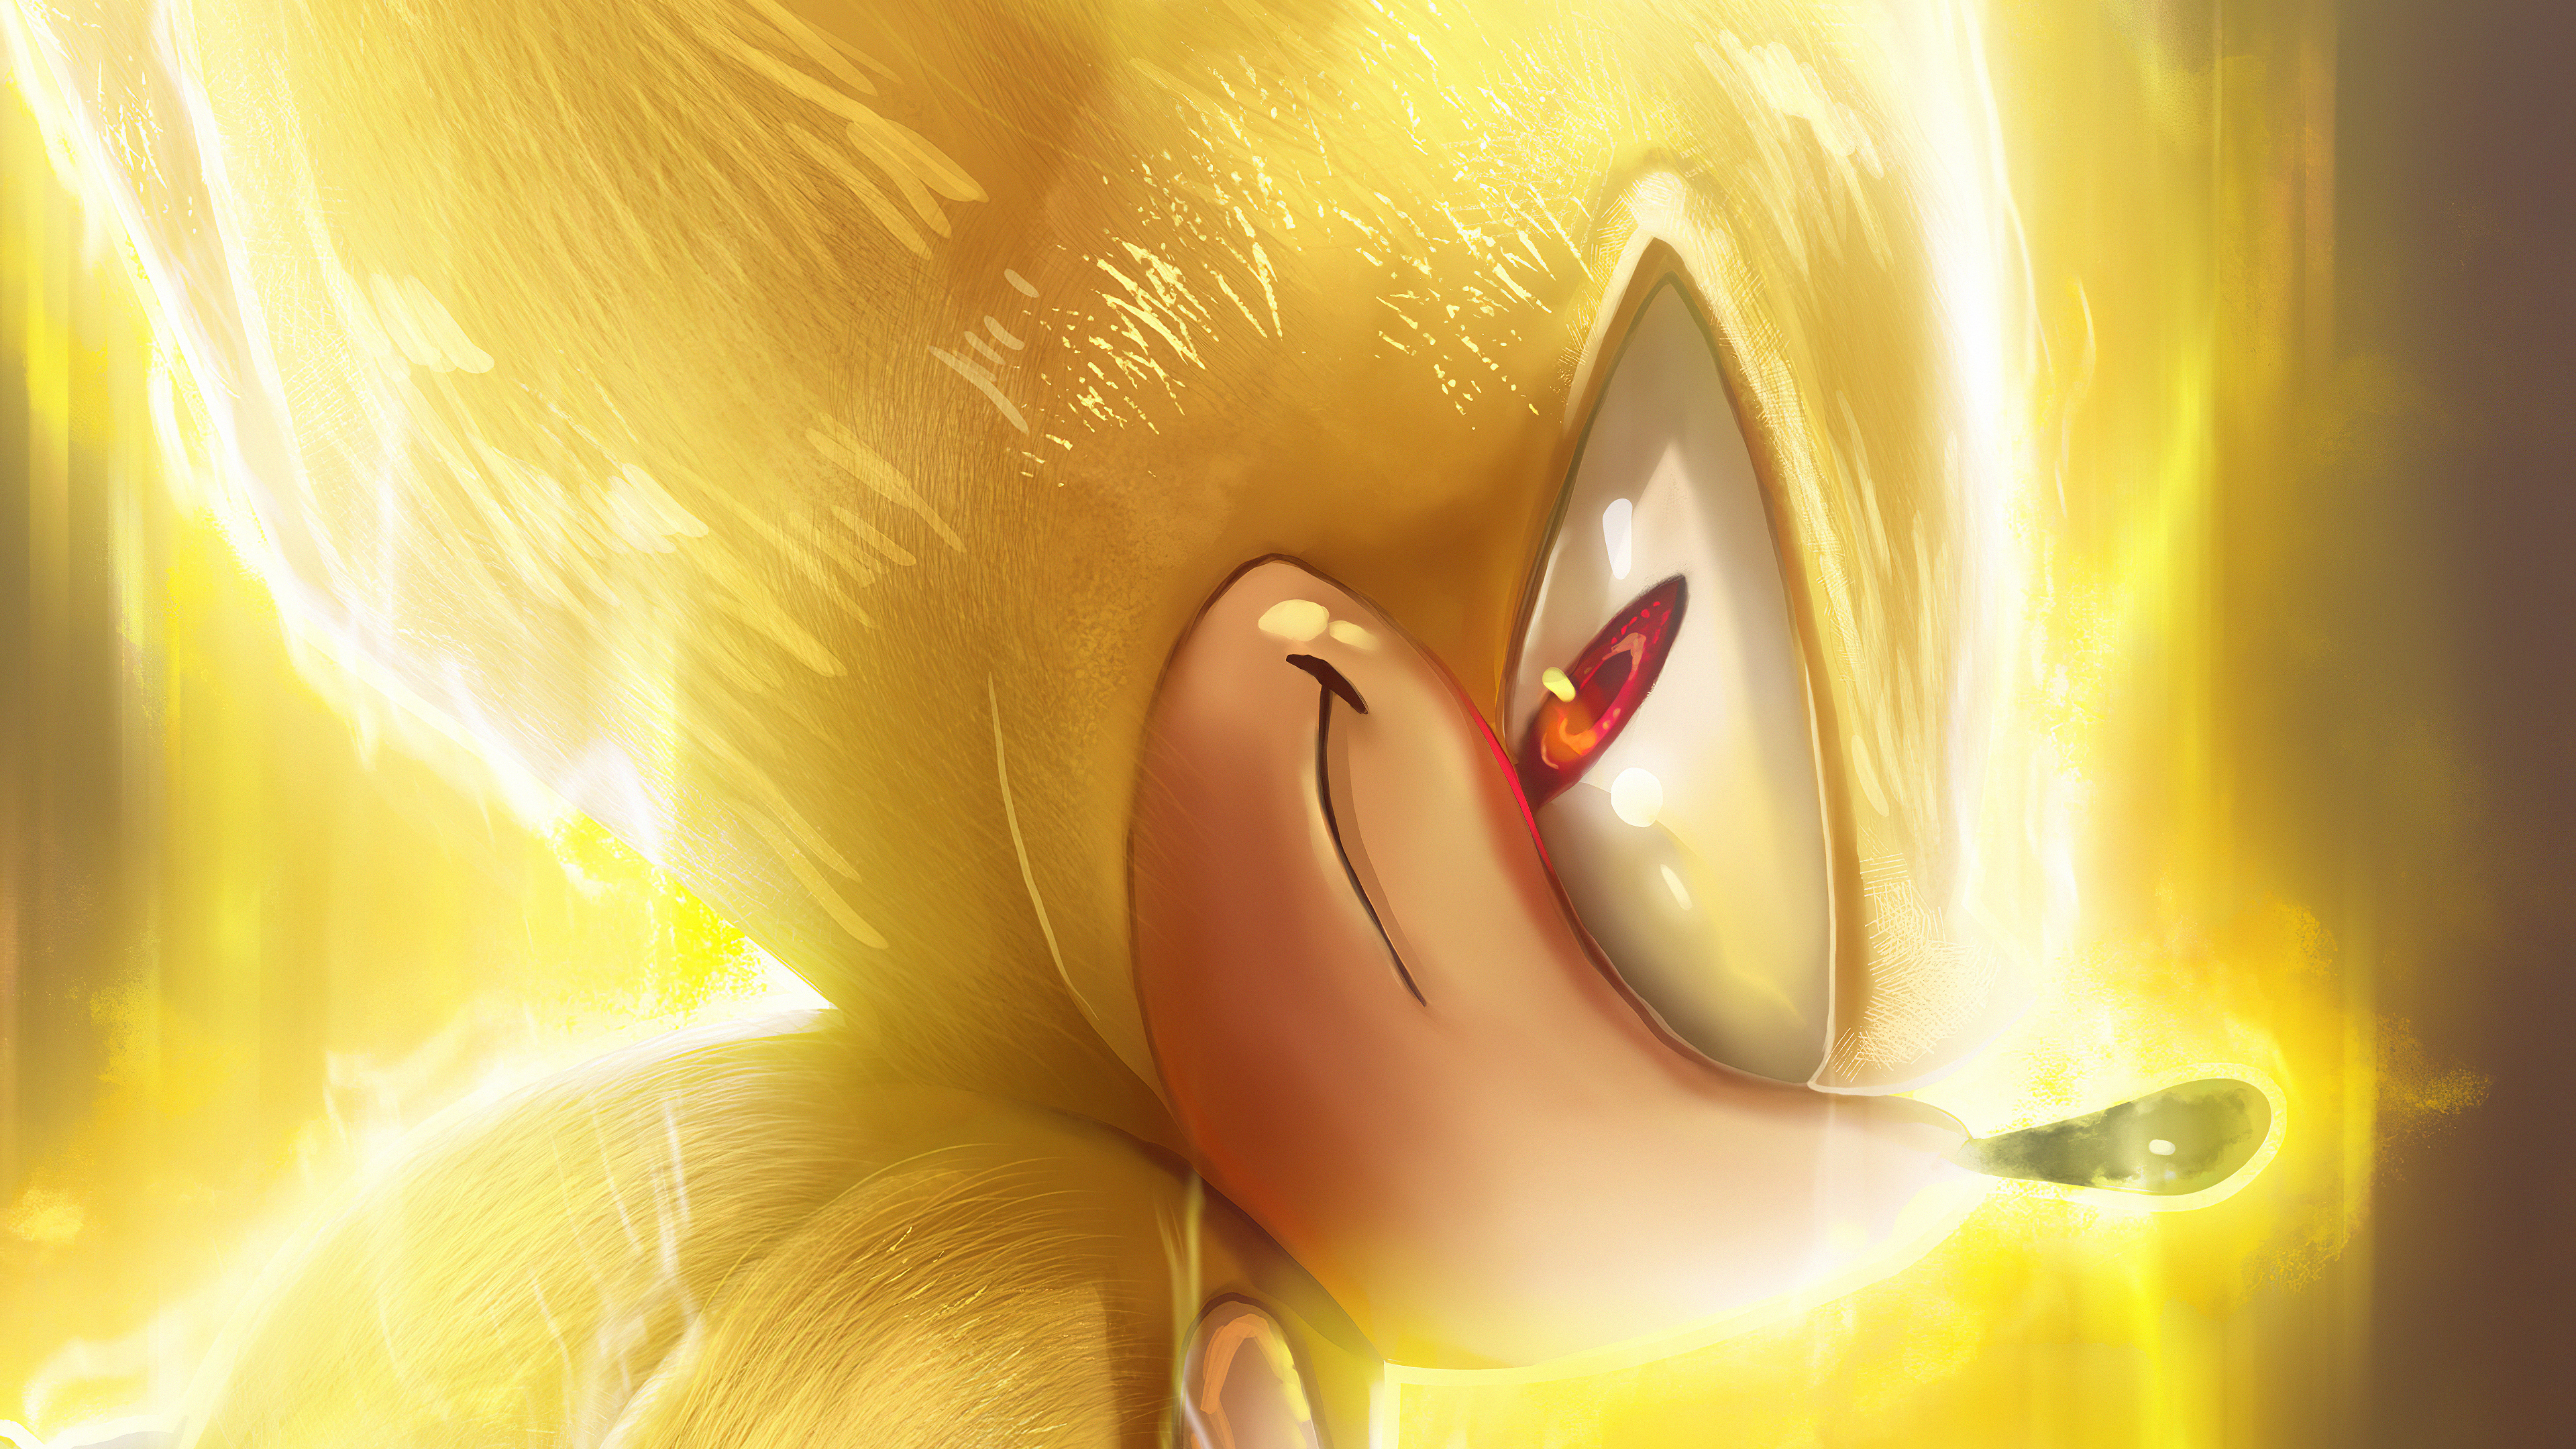 Sonic The Hedgehog 4k Ultra Hd Wallpaper Background Image 3840x2160 Id 1056150 Wallpaper Abyss